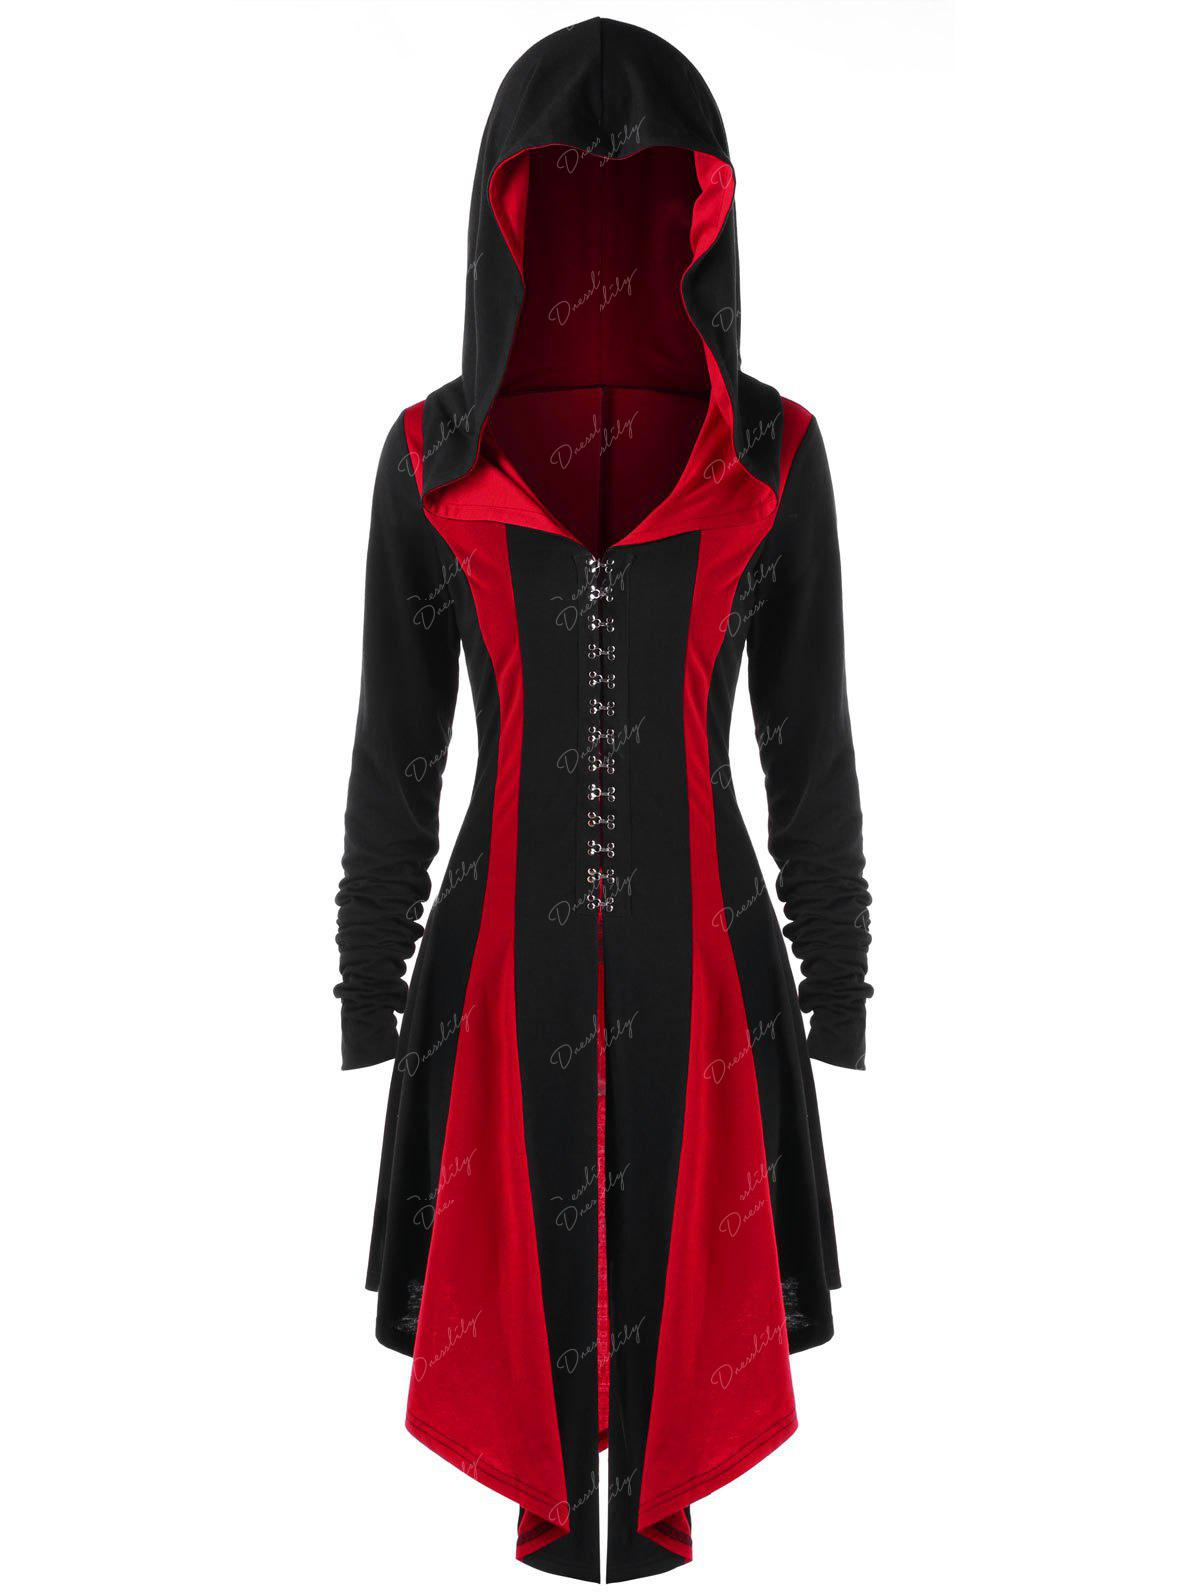 Hooded Lace Up Hook Button Coat - RED/BLACK 2XL